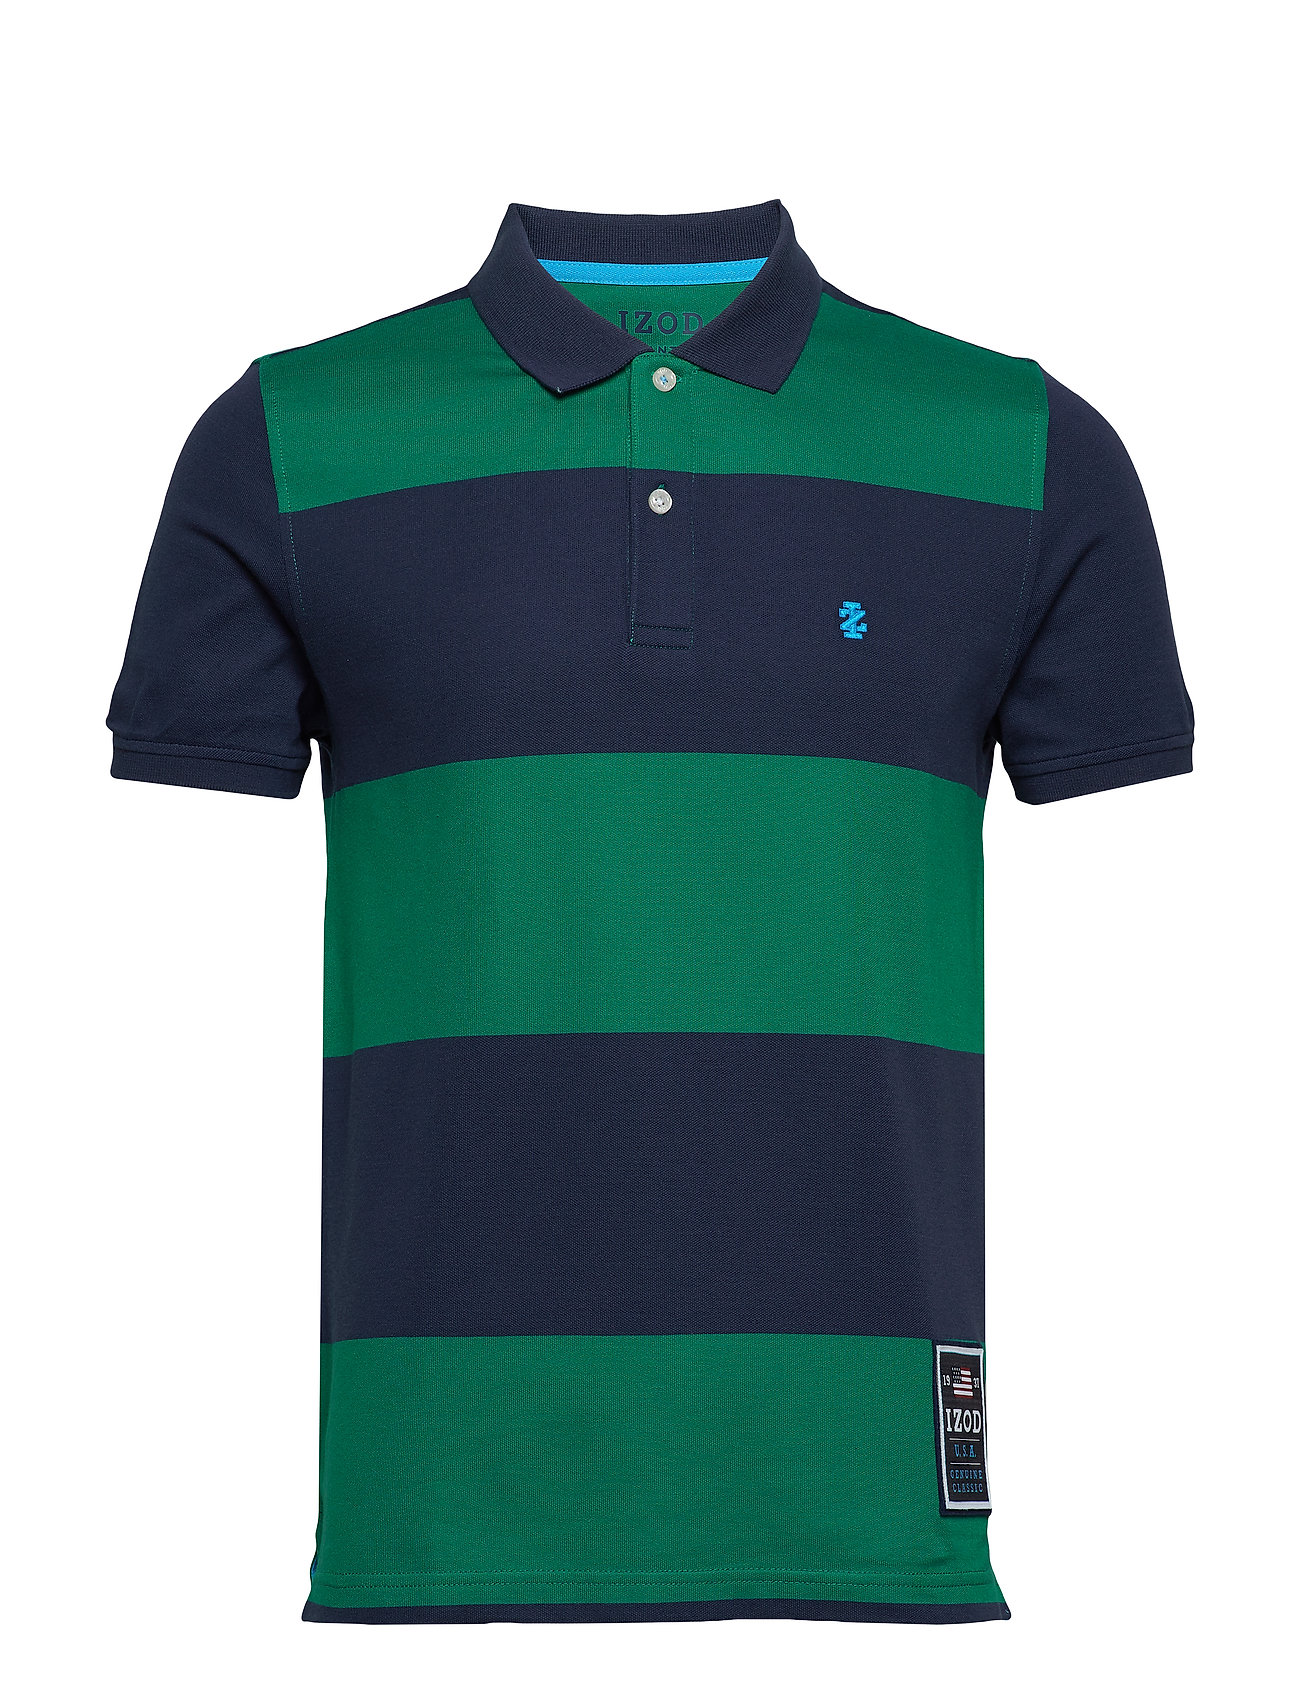 IZOD RUGBY STRIPE PERFORMANCE POLO - EVERGREEN